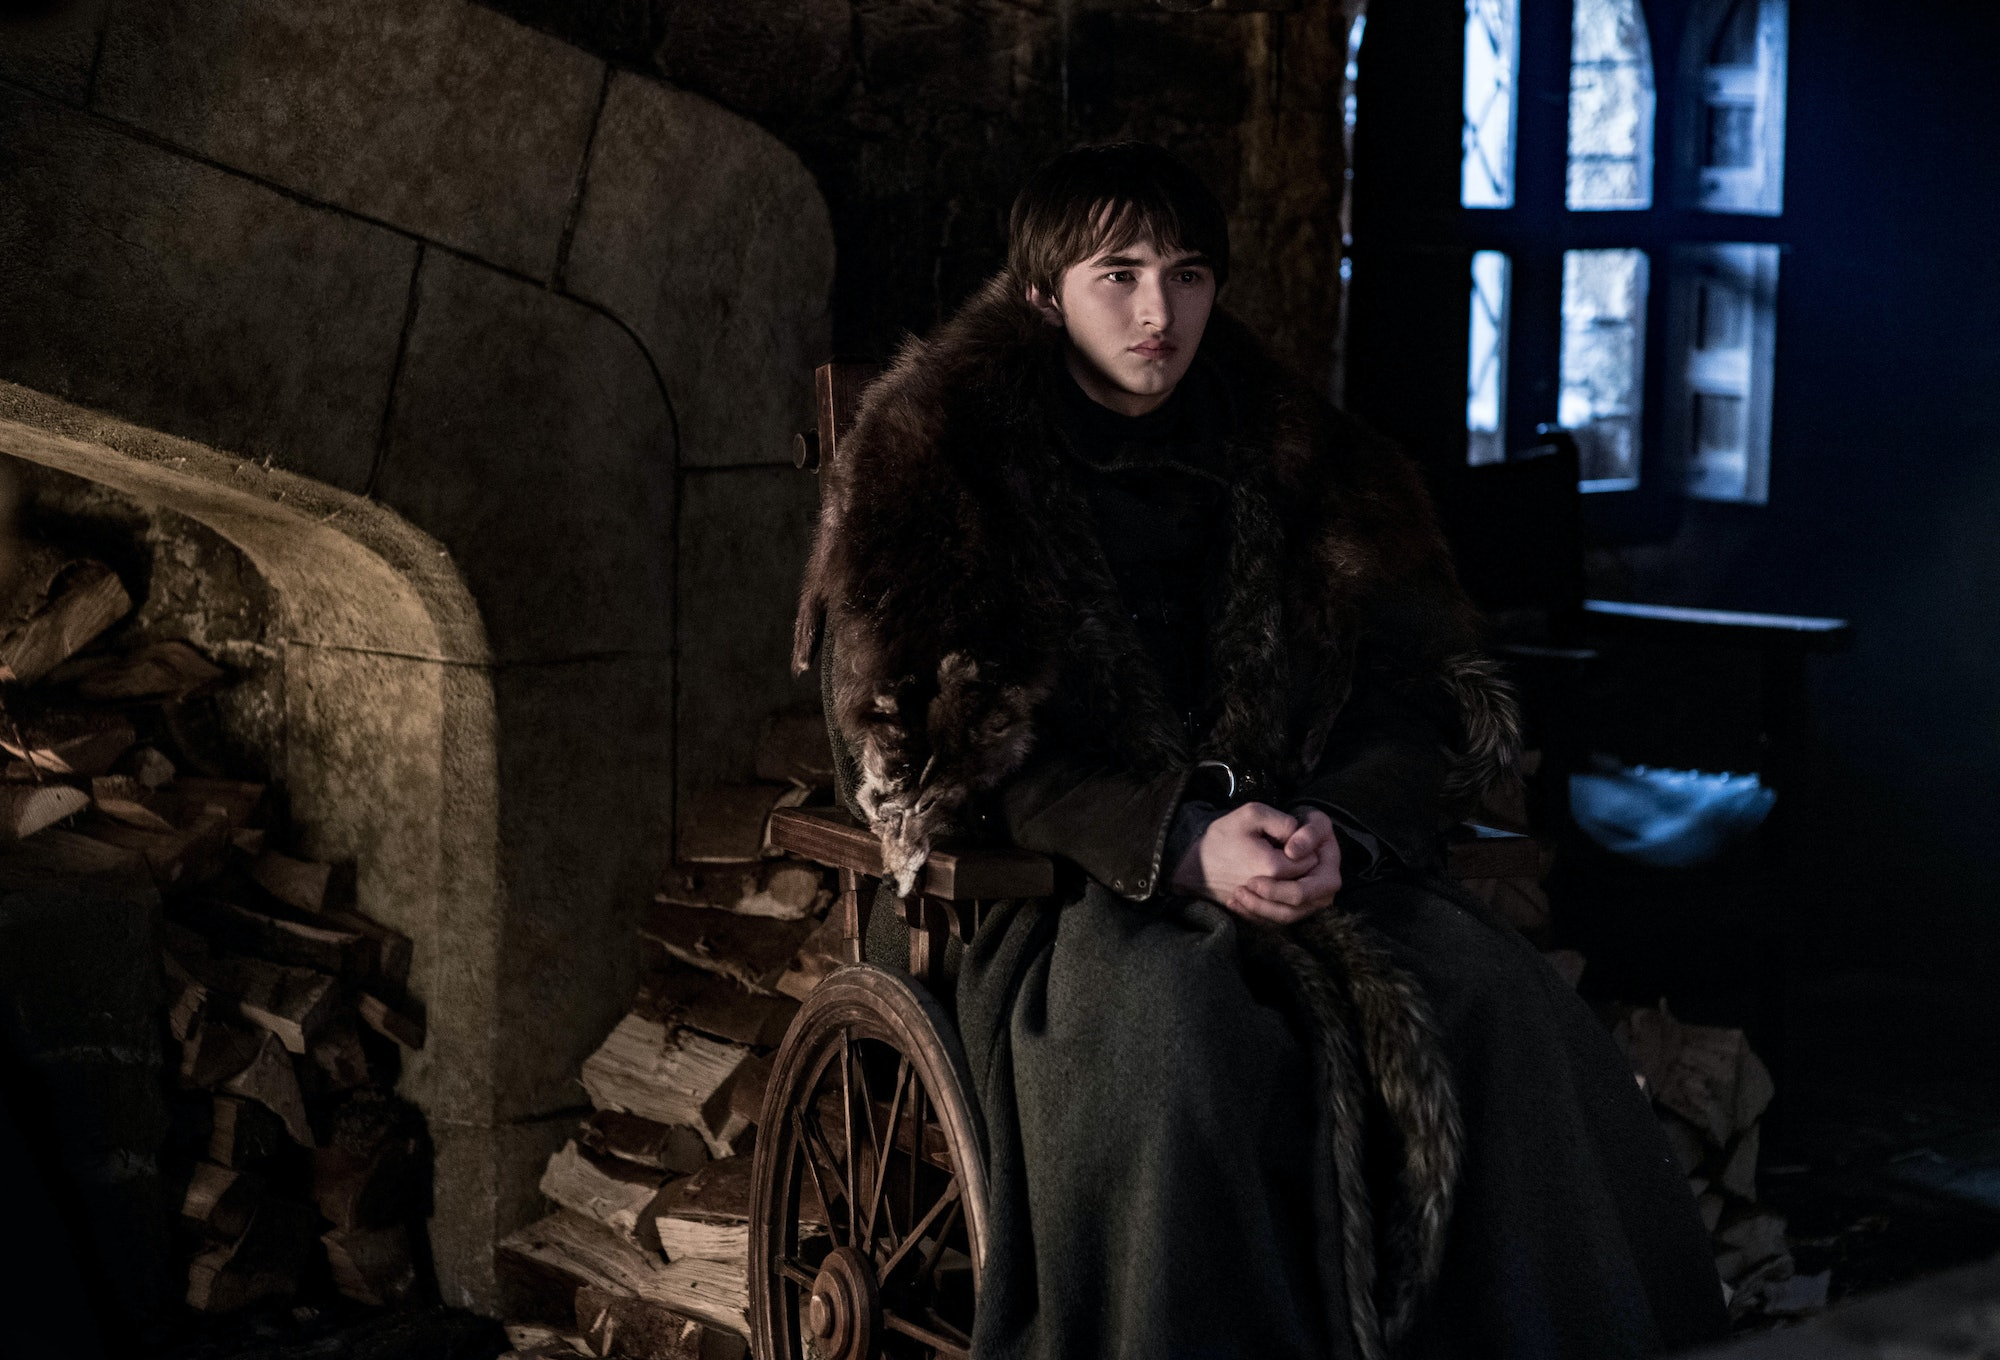 Bran says in the second episode of Season 8 that he knows the Night King will come for him because of the scar he left on his forearm.